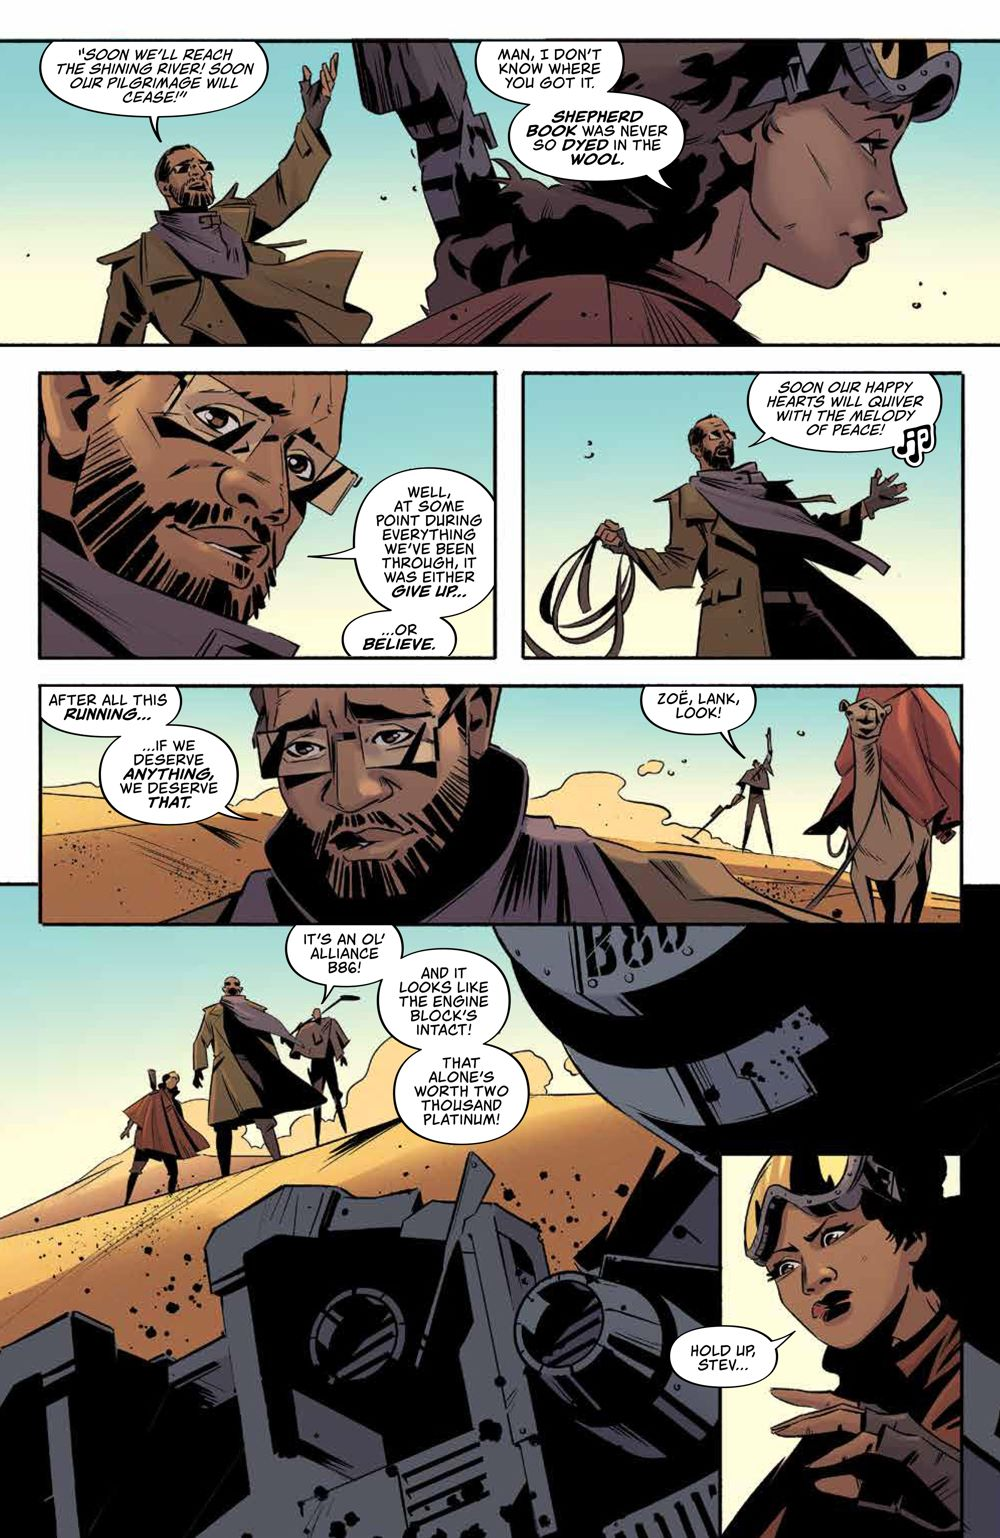 Firefly_ReturnToEarth_v1_HC_PRESS_9 ComicList Previews: FIREFLY RETURN TO THE EARTH THAT WAS VOLUME 1 HC